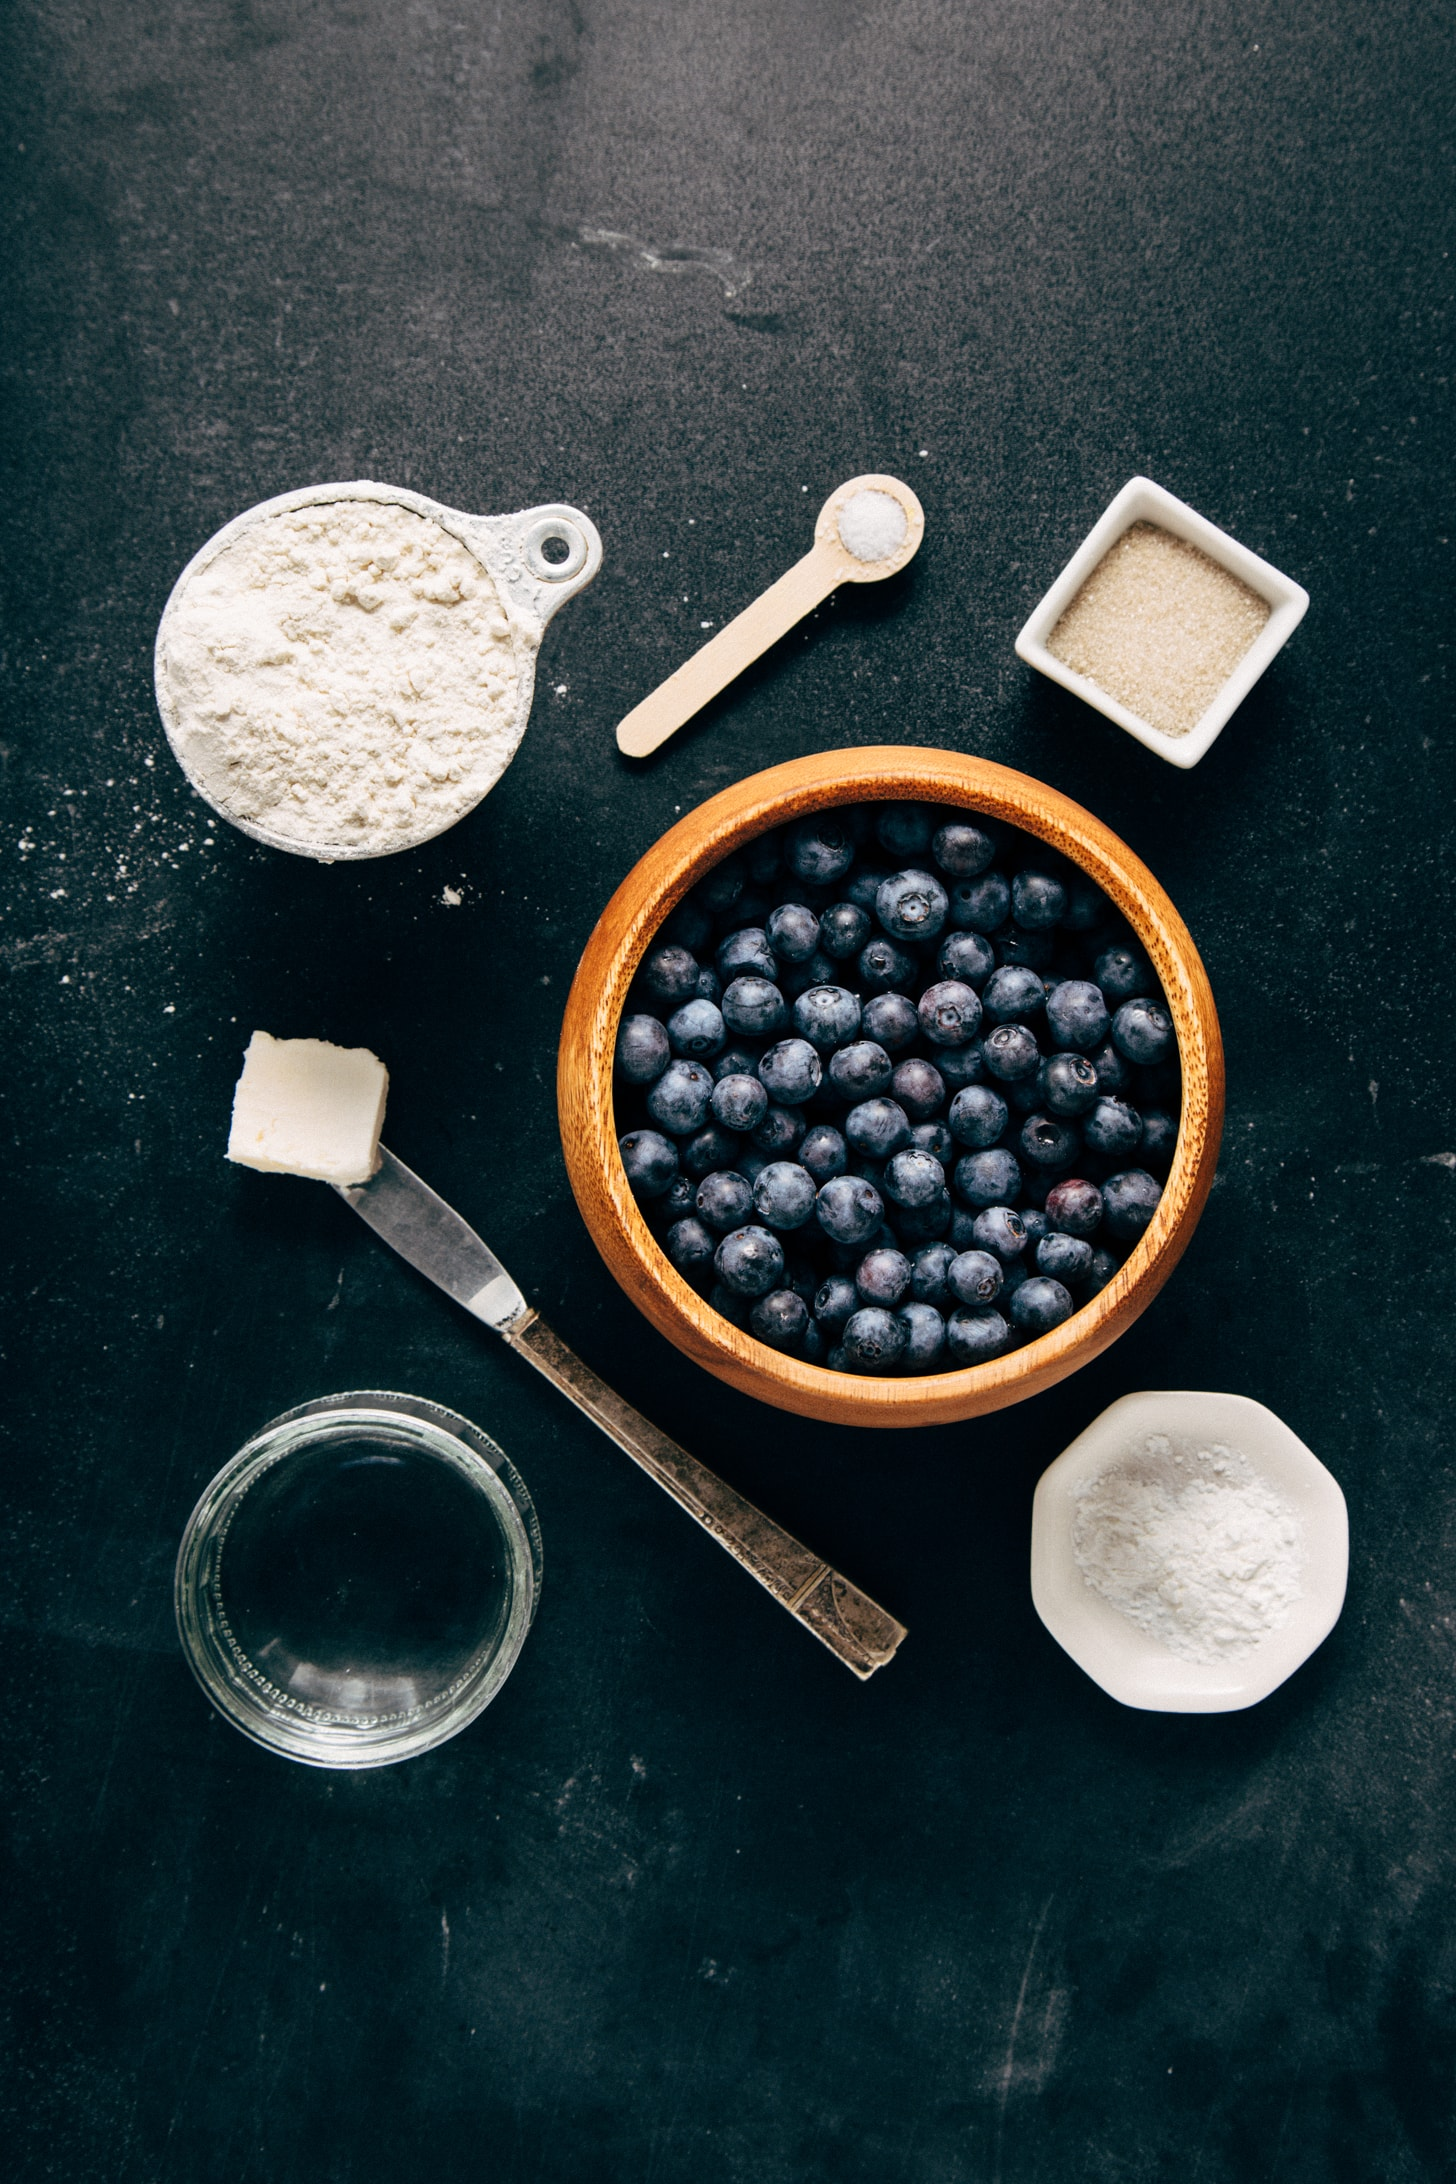 Assortment of ingredients for making simple vegan gluten-free Mini Blueberry Galettes